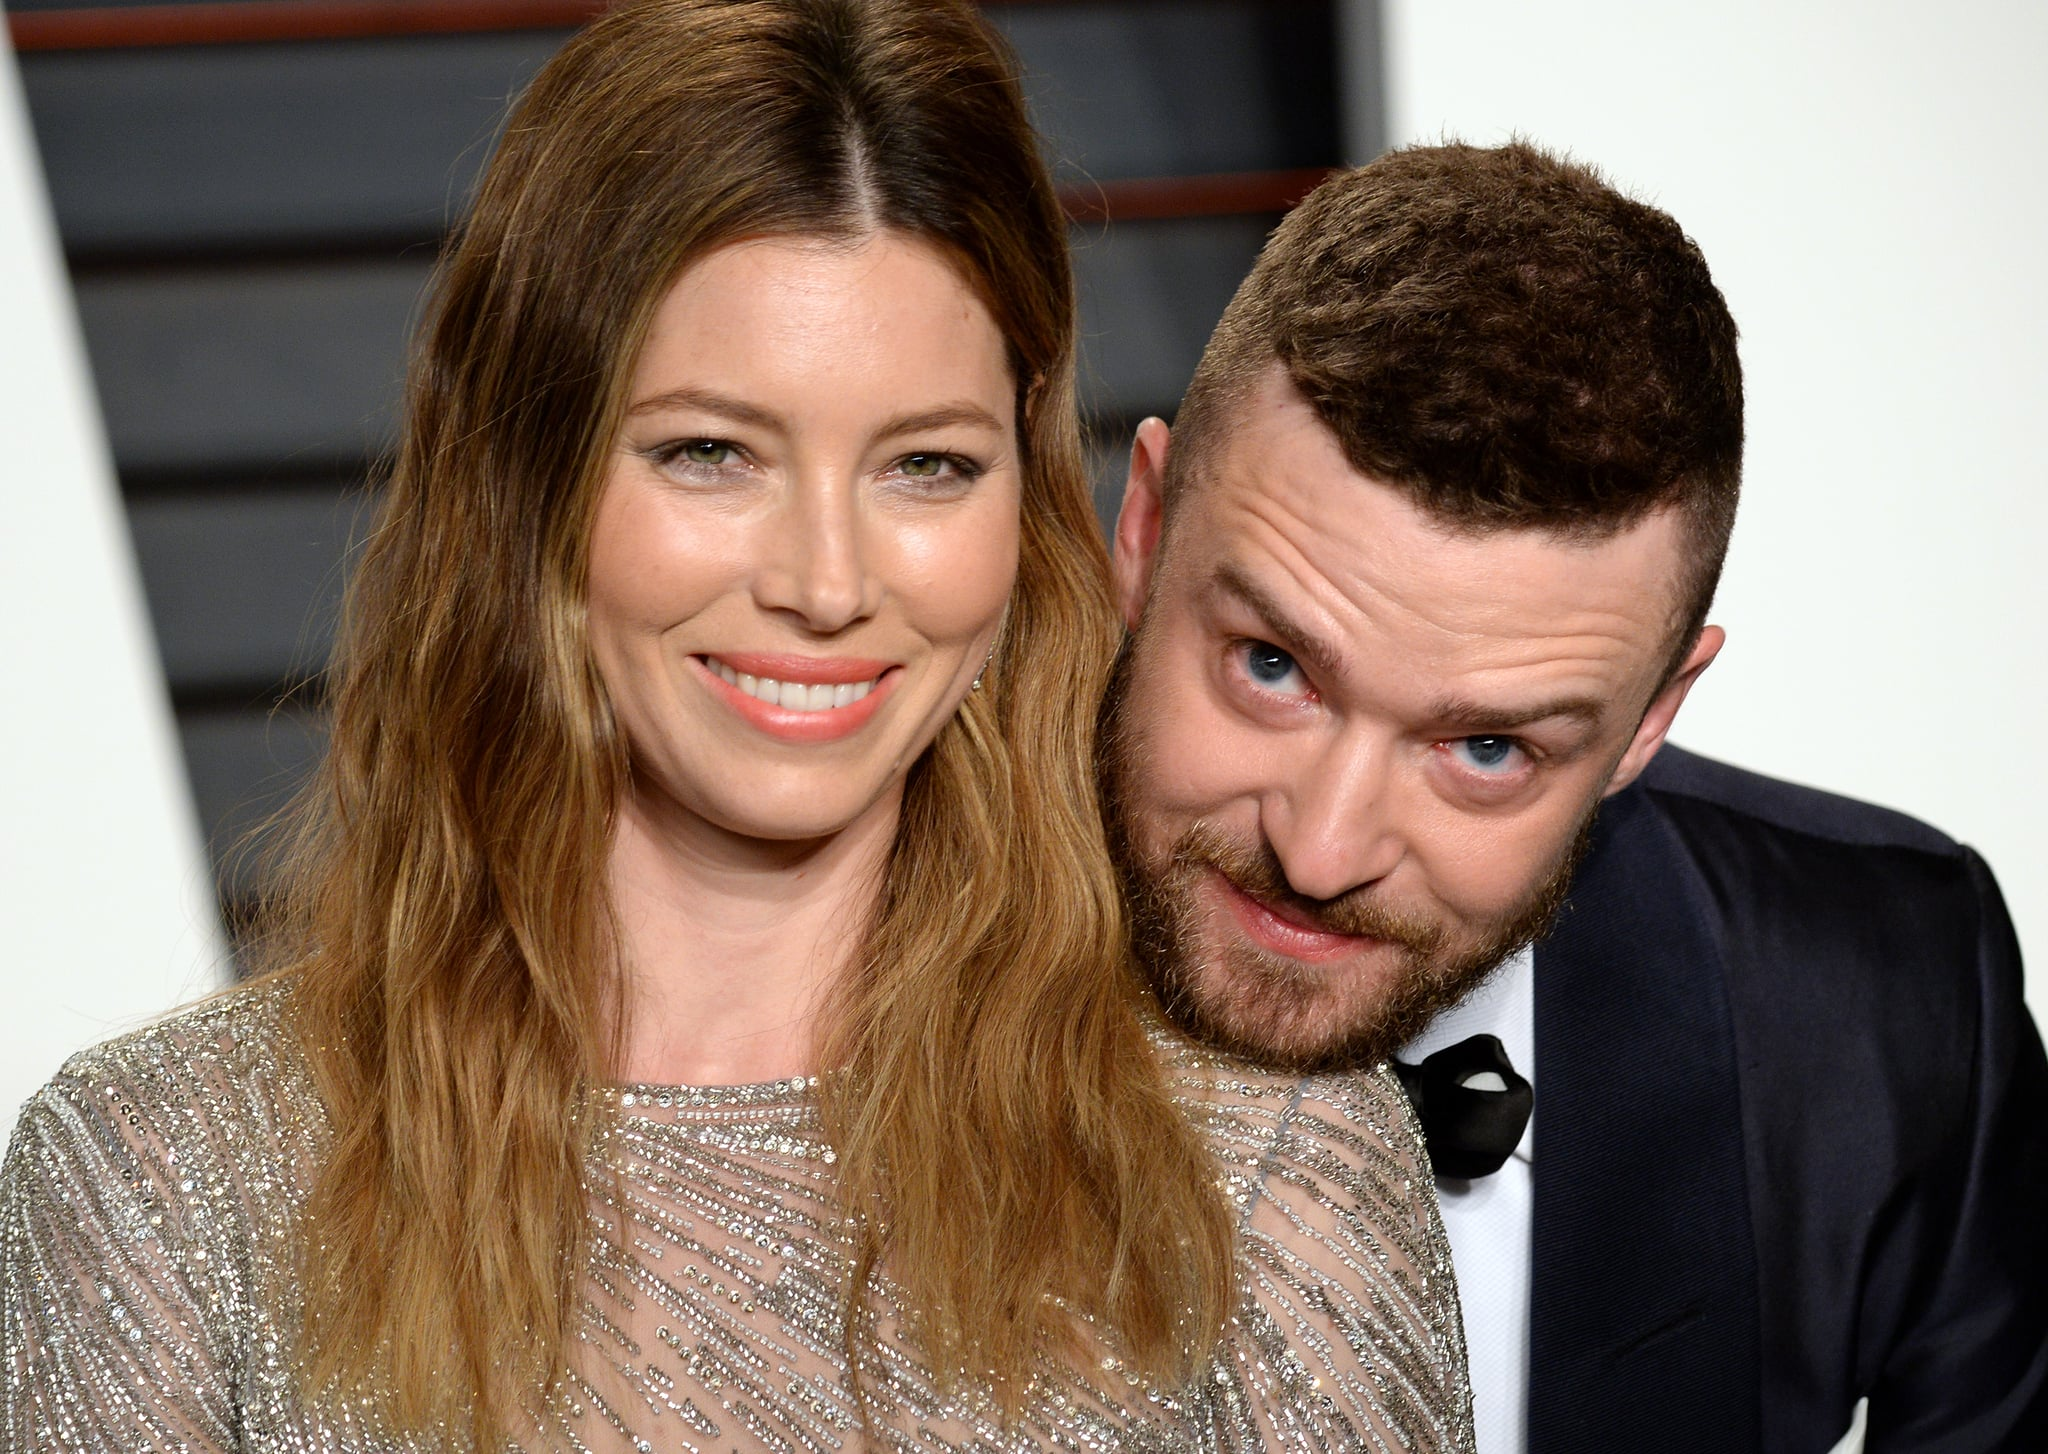 BEVERLY HILLS, CA - FEBRUARY 28:  Jessica Biel and Justin Timberlake attend the 2016 Vanity Fair Oscar Party hosted By Graydon Carter at Wallis Annenberg Center for the Performing Arts on February 28, 2016 in Beverly Hills, California.  (Photo by Anthony Harvey/Getty Images)